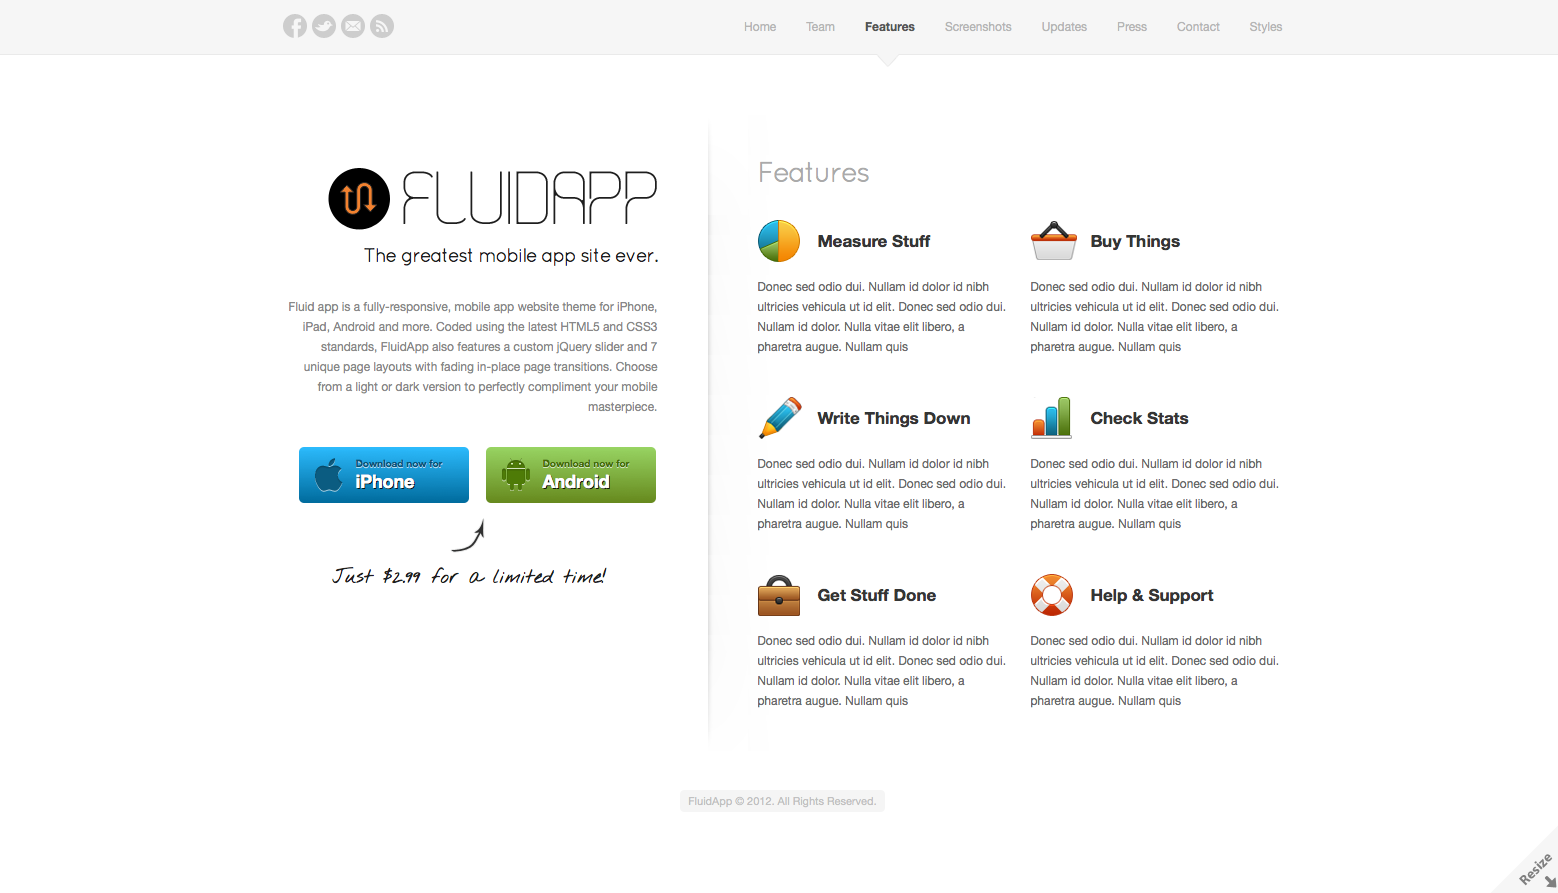 FluidApp - Responsive Mobile App Website Template - Features - List all of your app's features in a tightly laid out grid with colorful eye-catching icons